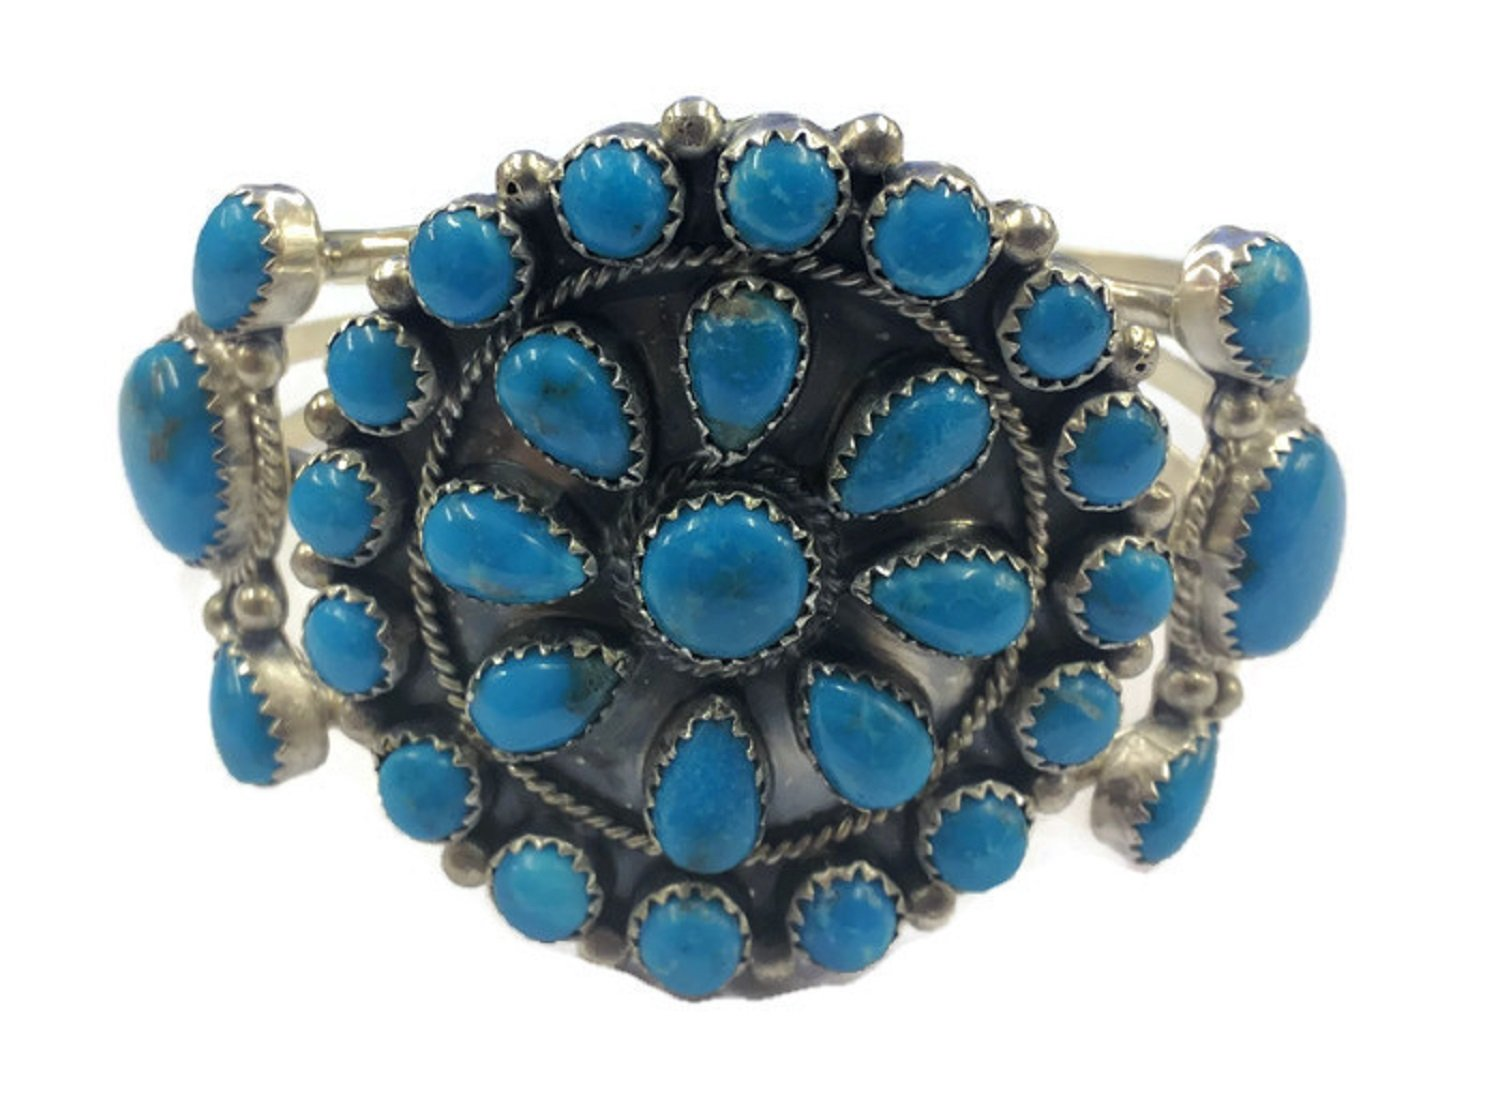 .925 Sterling Silver Native American Handcrafted Jewelry Kingman Turquoise Cuff